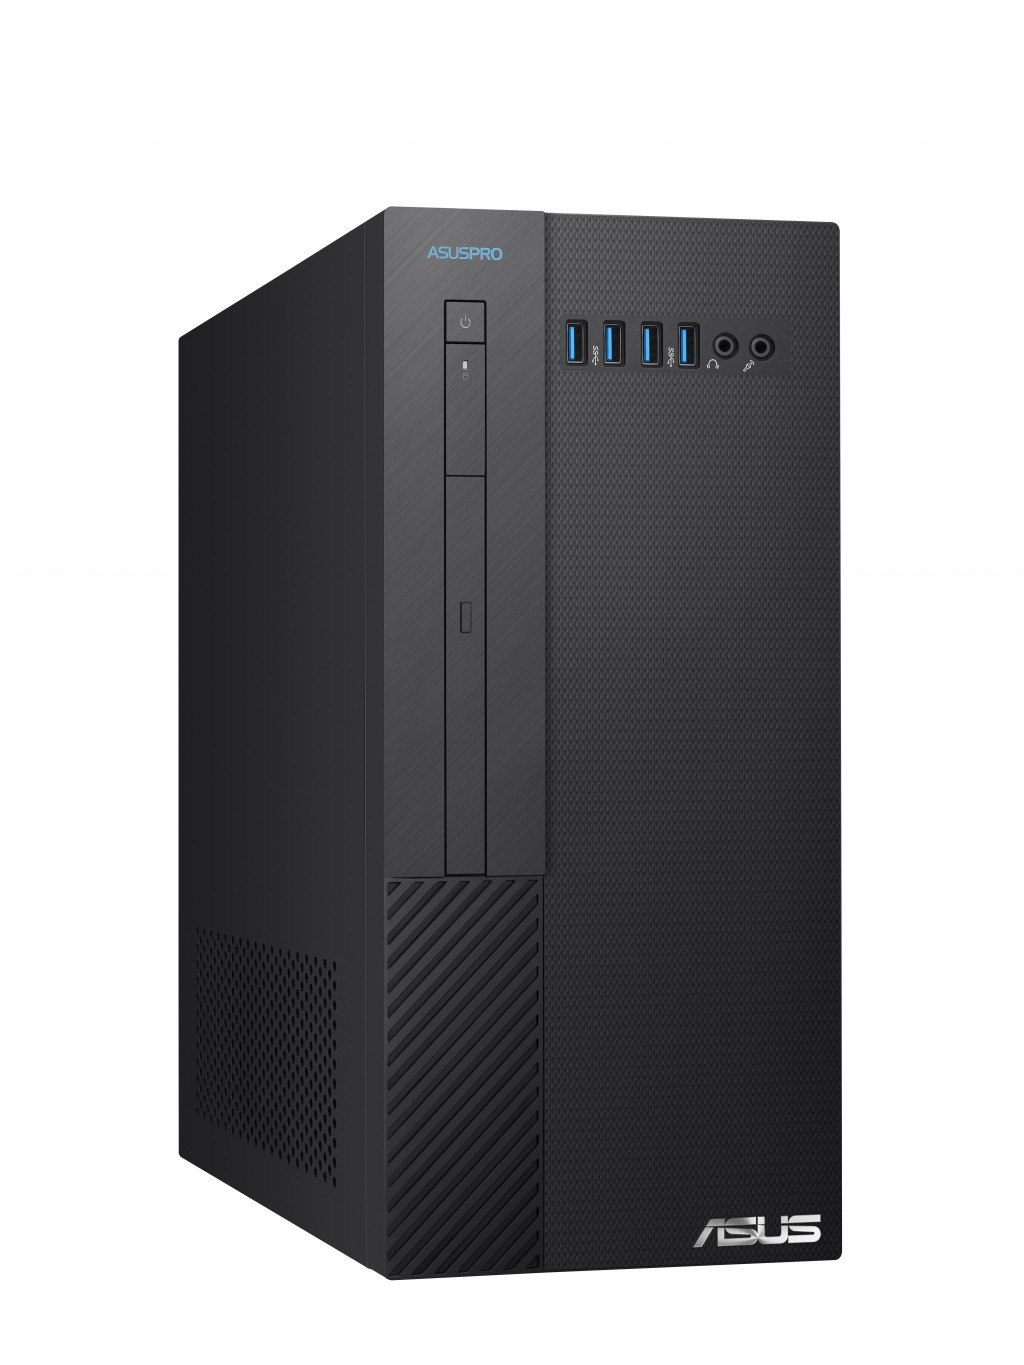 Asus Pro D340MF-39100F026R Desktop, Intel Core i3, i3-9100F, Internal memory 4 GB, DDR4 U-DIMM, SSD 256 GB, NVIDIA GeForce GT710, DVD reader 8X, Windows 10 Pro, Warranty 24 month(s)